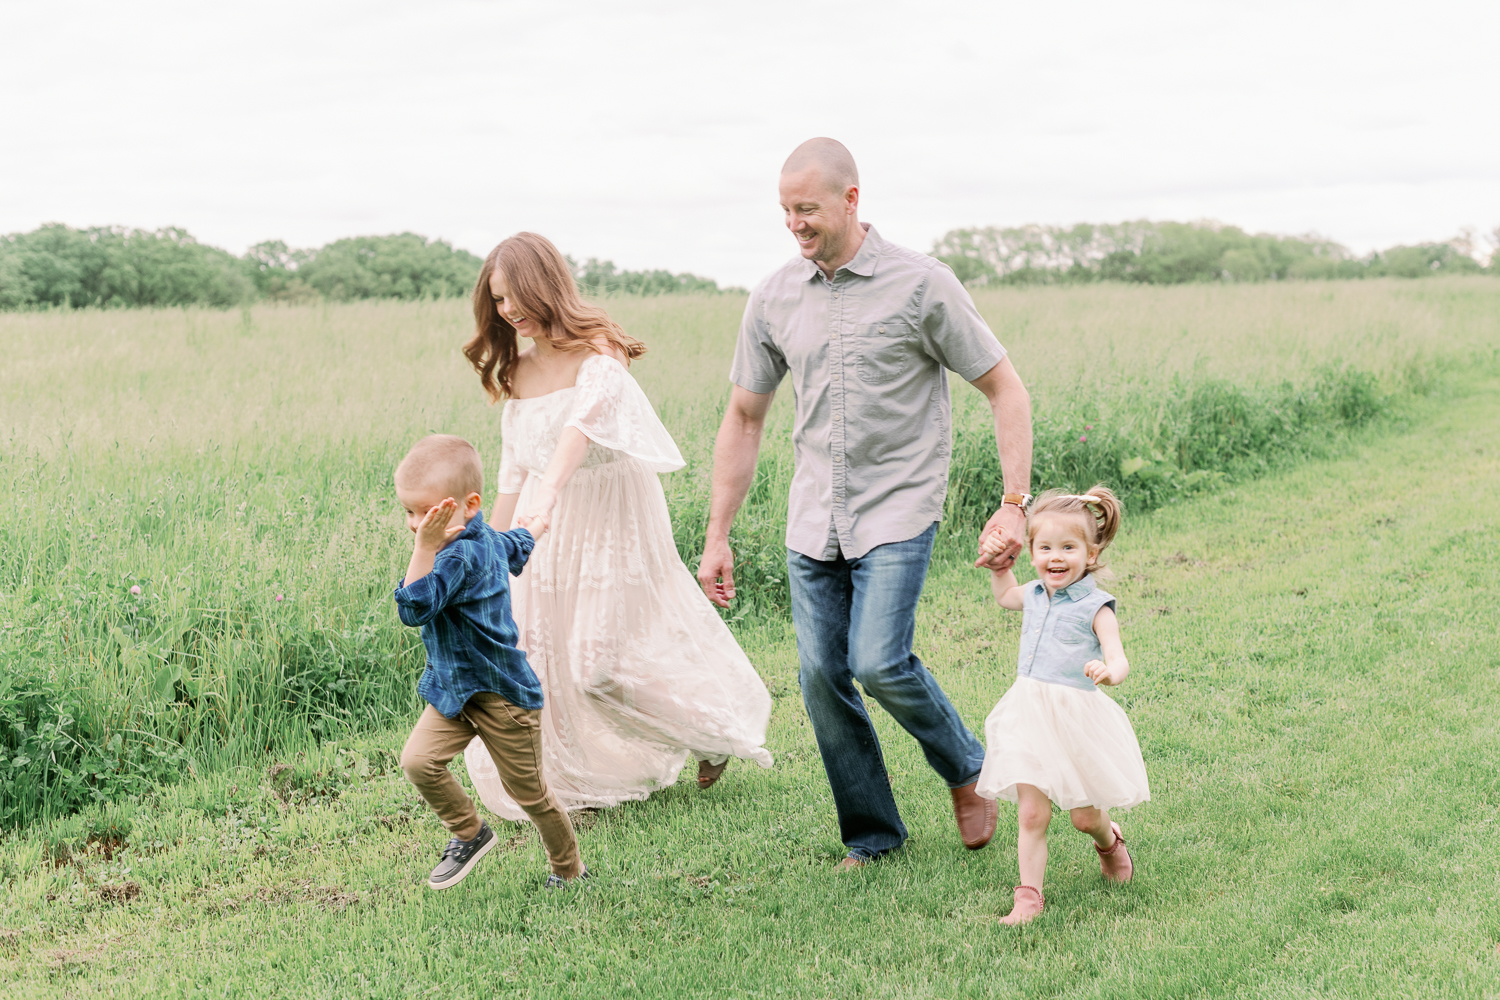 Chicago Naples Lifestyle Family Photographer – St James Farm Family Photos-26